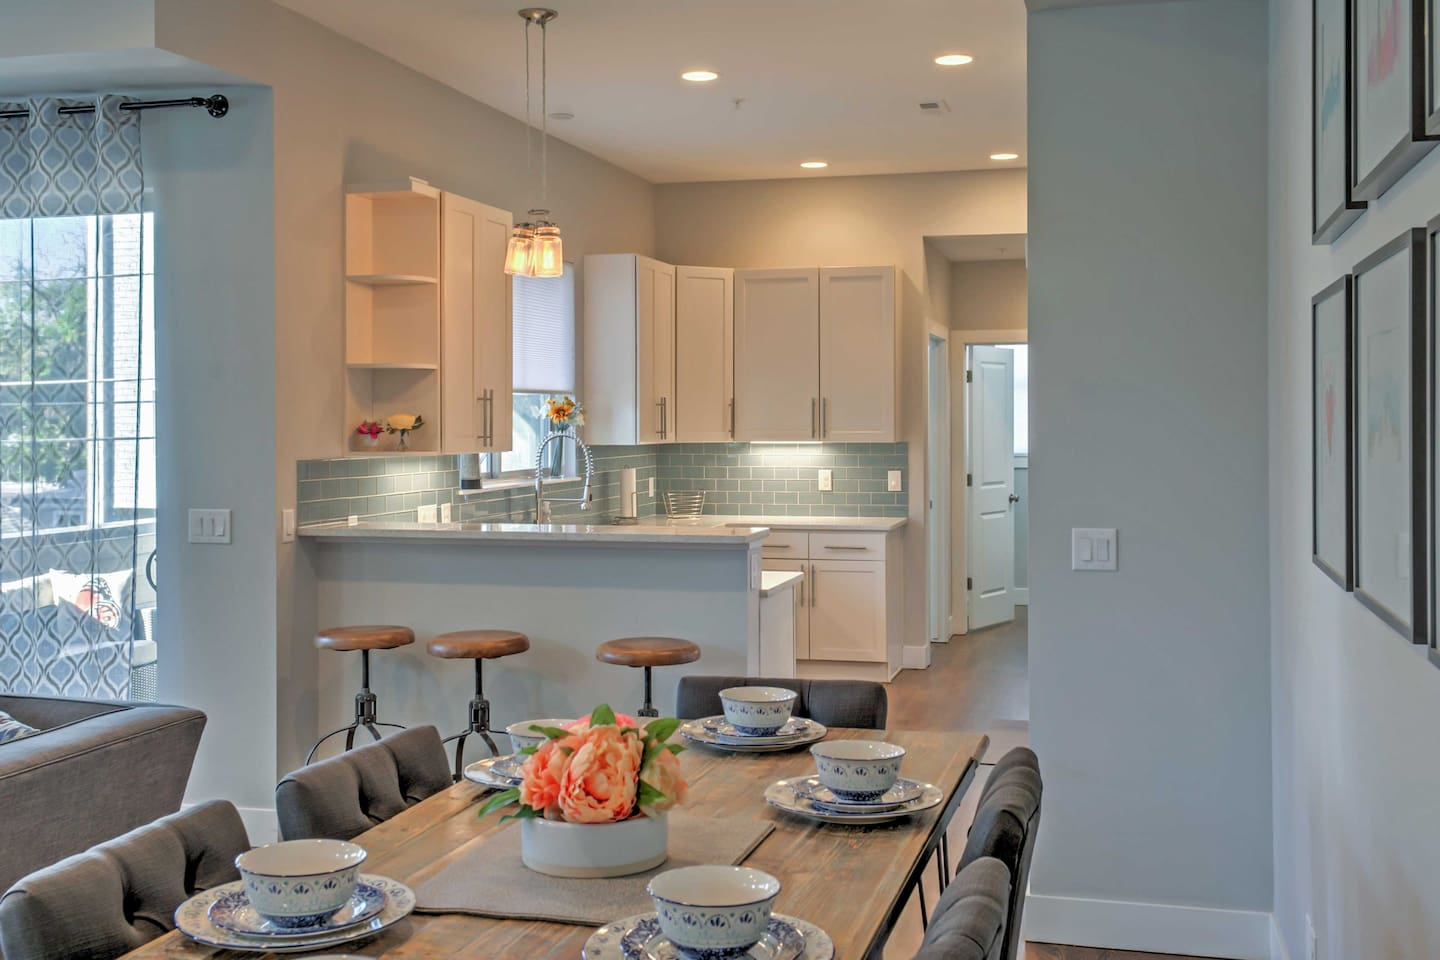 Make yourself at home inside this beautiful vacation rental in Littleton!